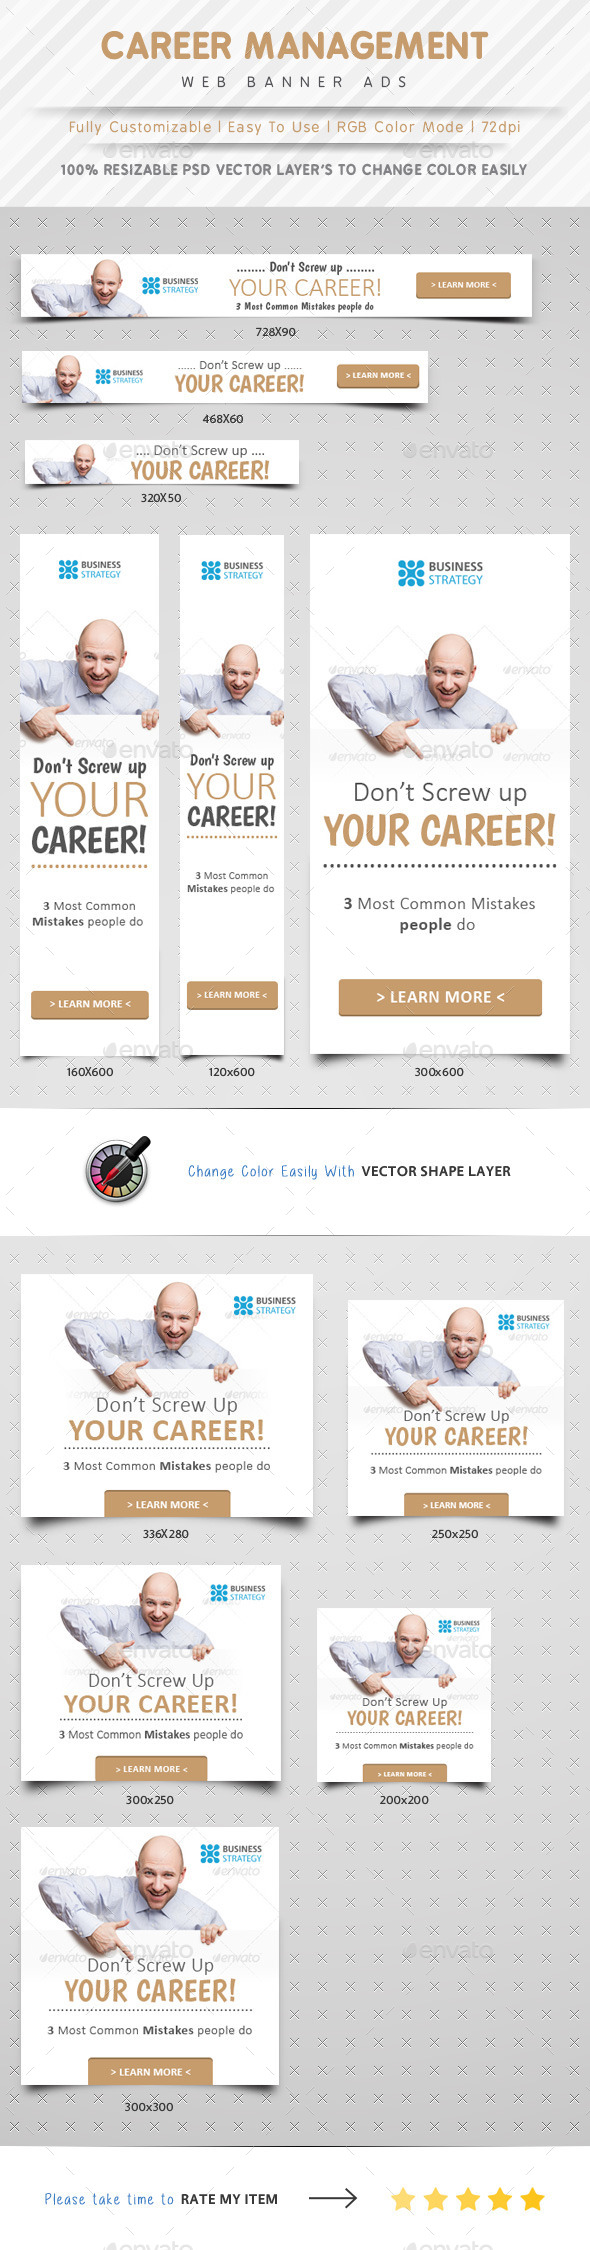 GraphicRiver Career Management Web Banner Ads 10308952